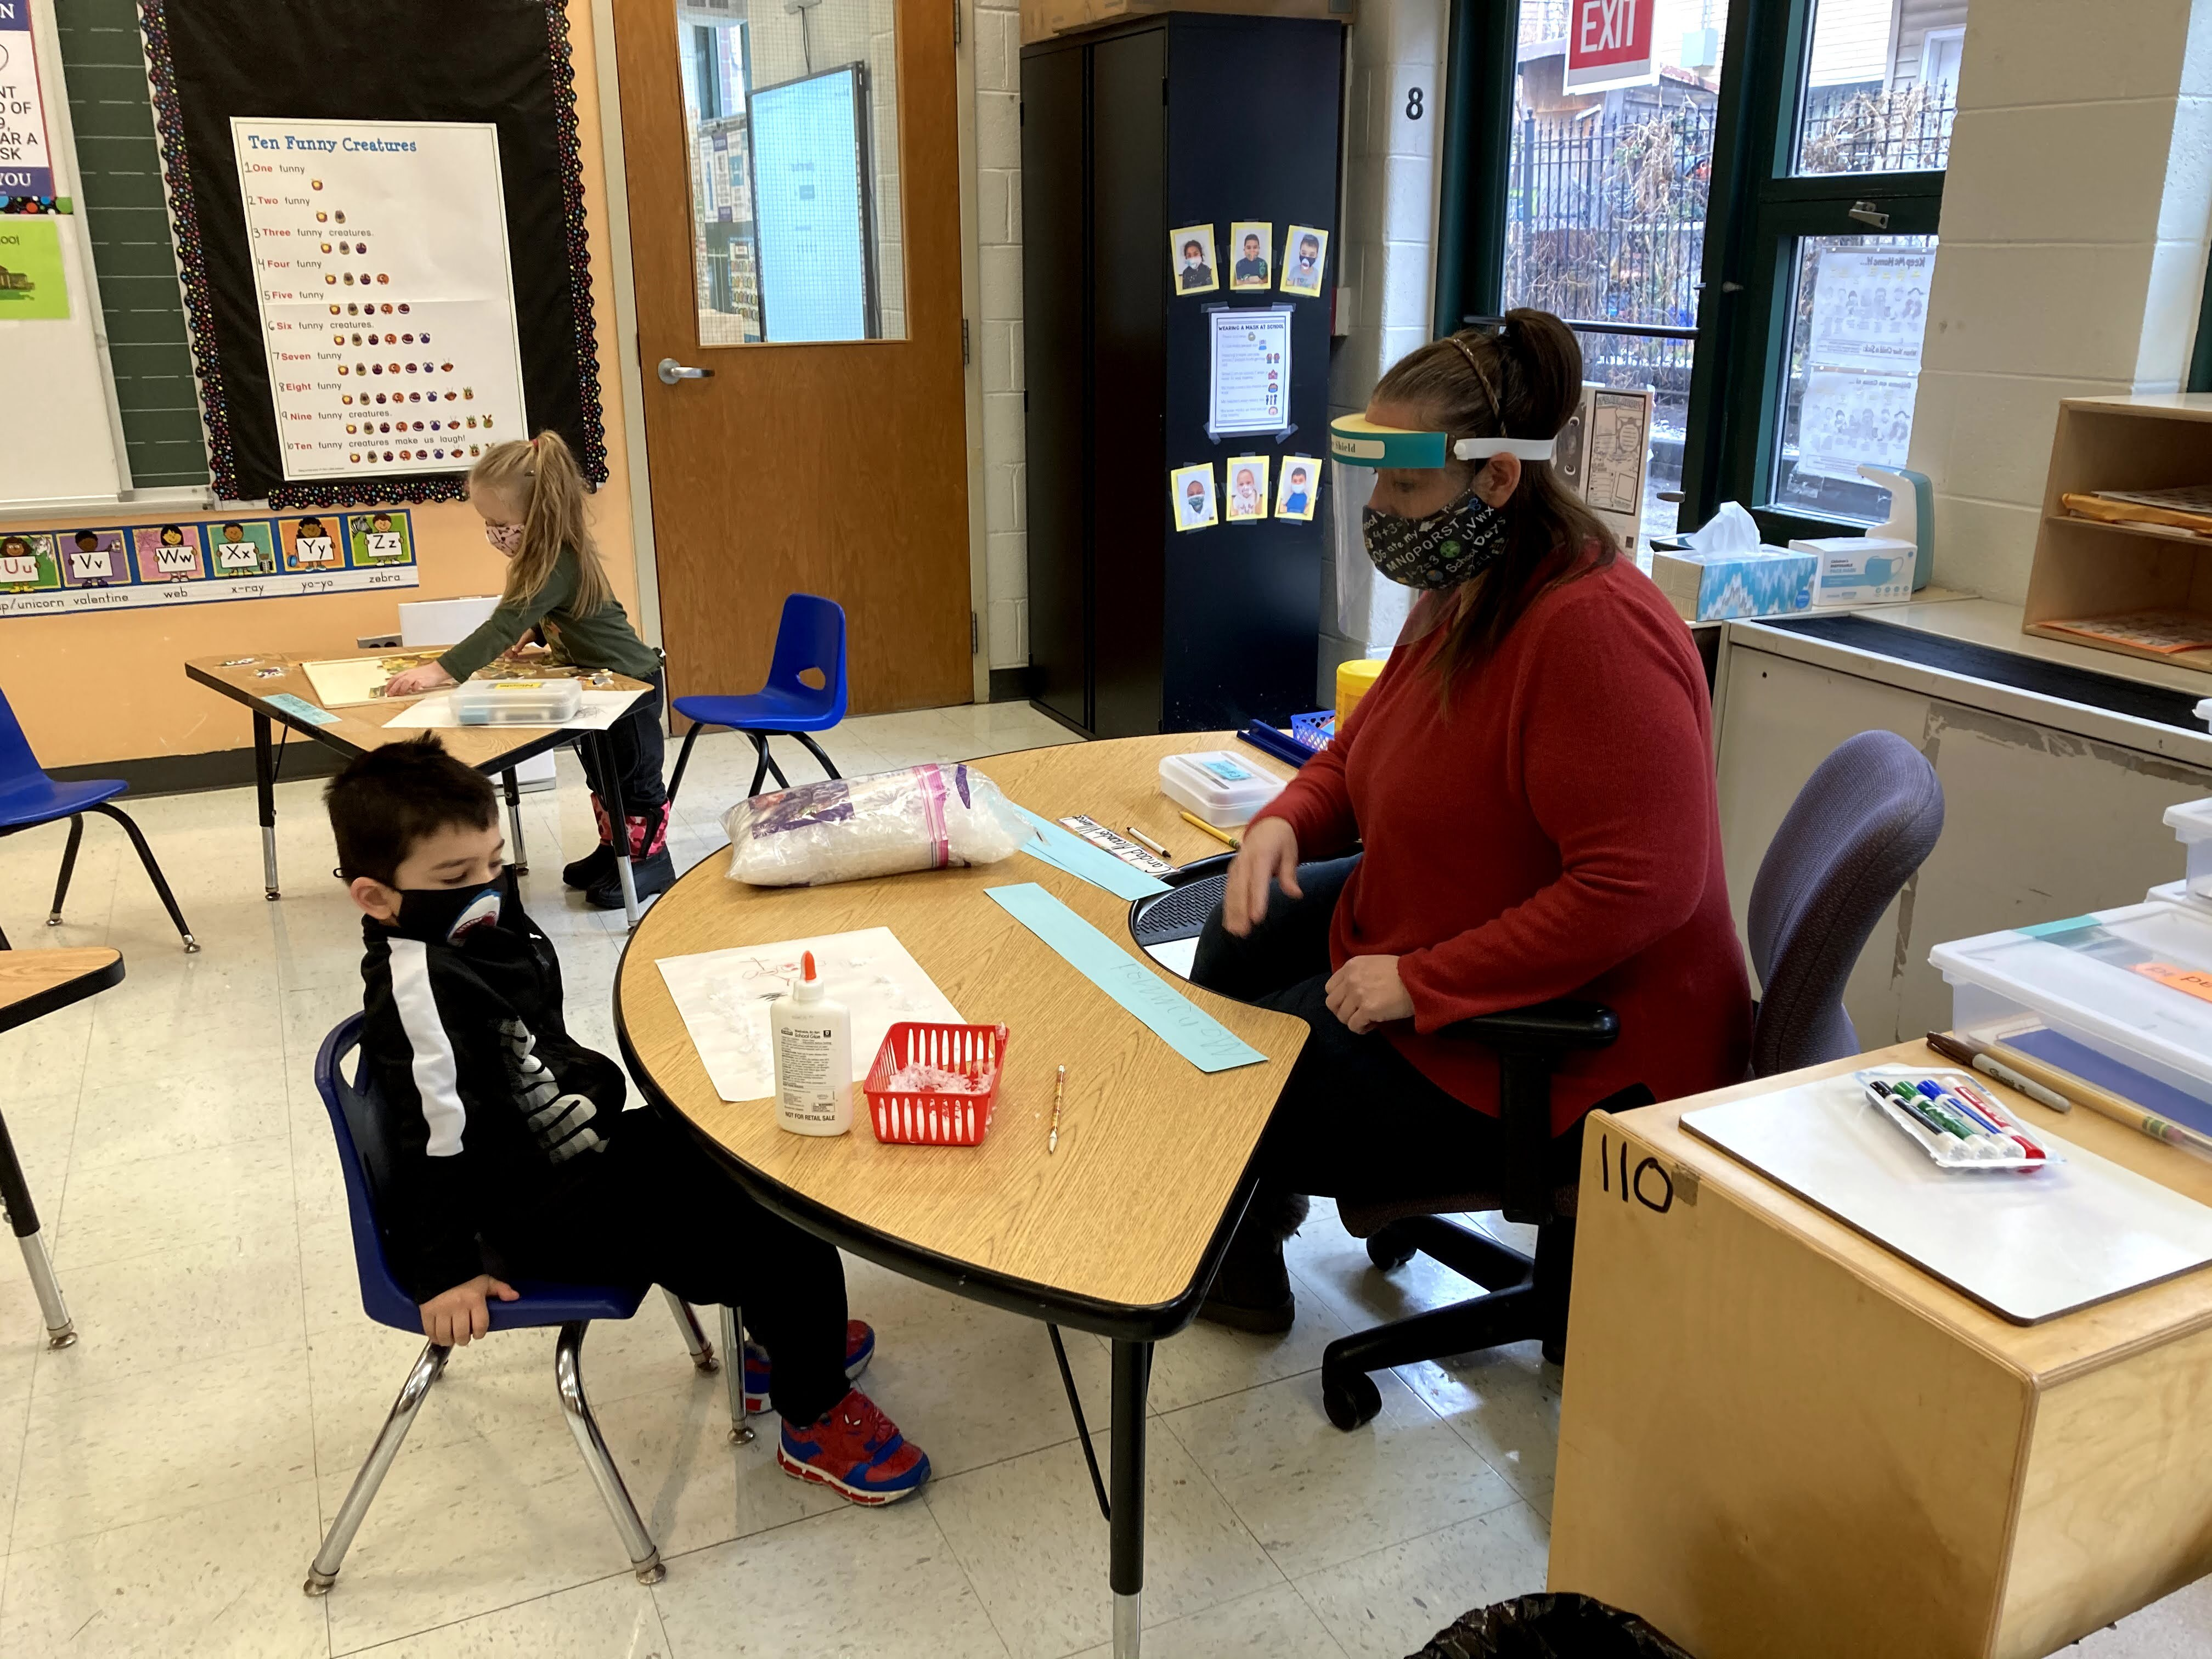 A teacher sits across a desk from a student in a classroom. Both are wearing masks.